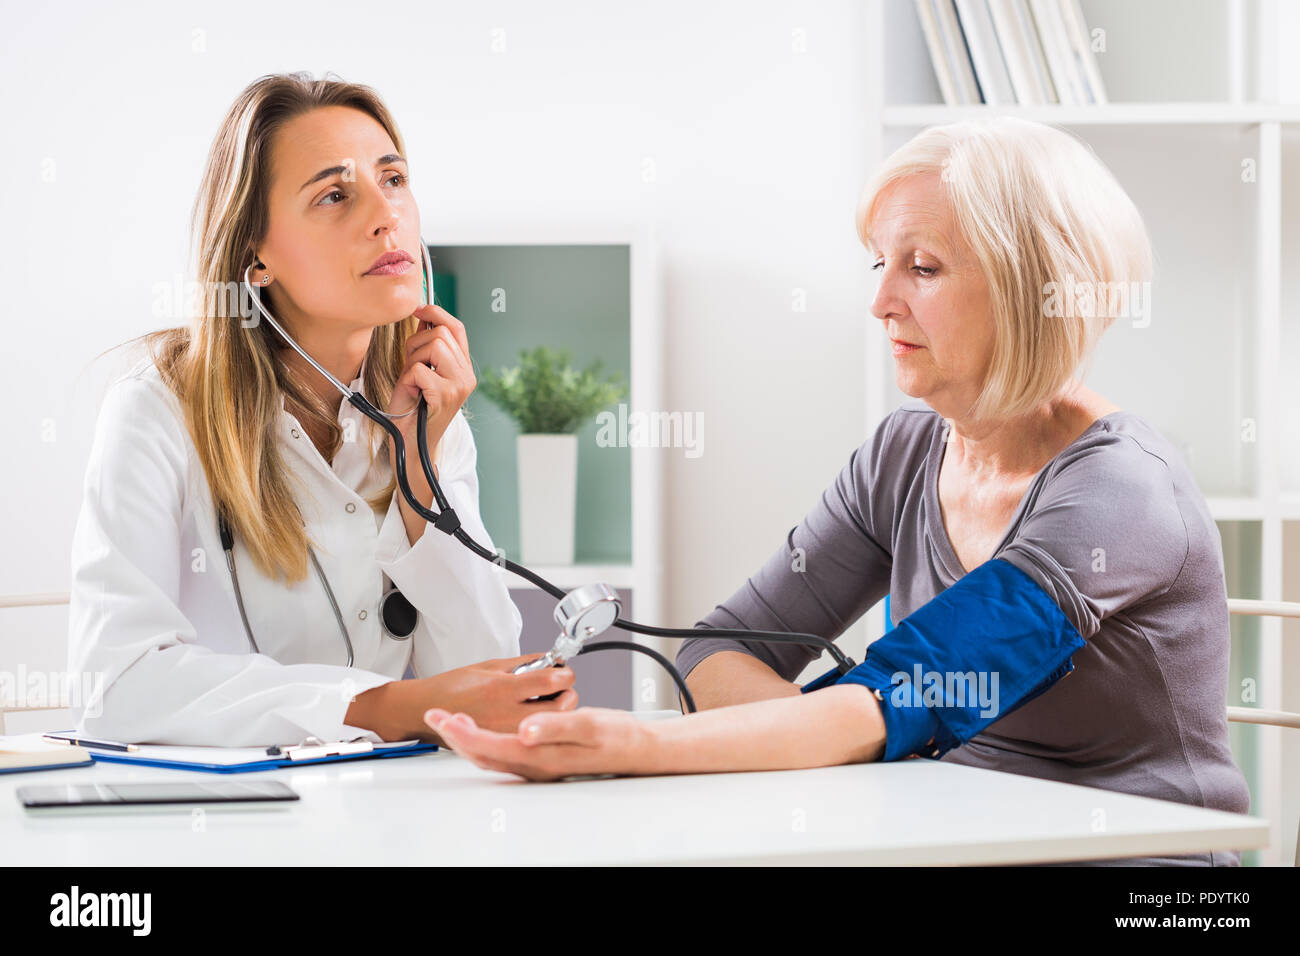 Female doctor is measuring blood pressure to her senior patient in doctor's office. - Stock Image